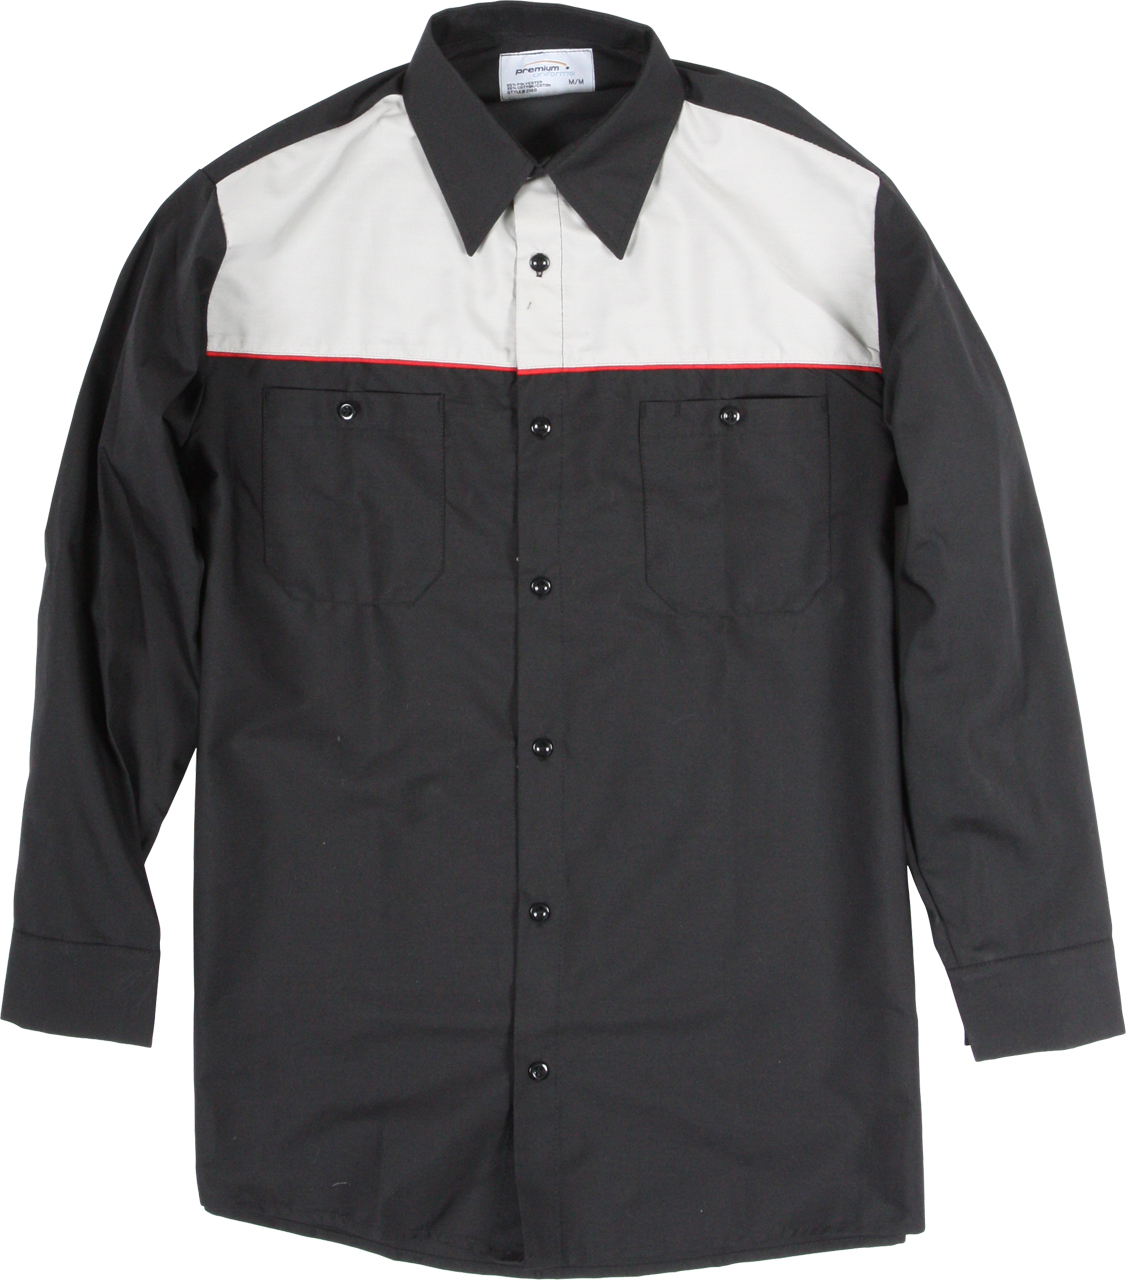 Picture of Premium Uniforms Long Sleeve Two-Tone Work Shirt